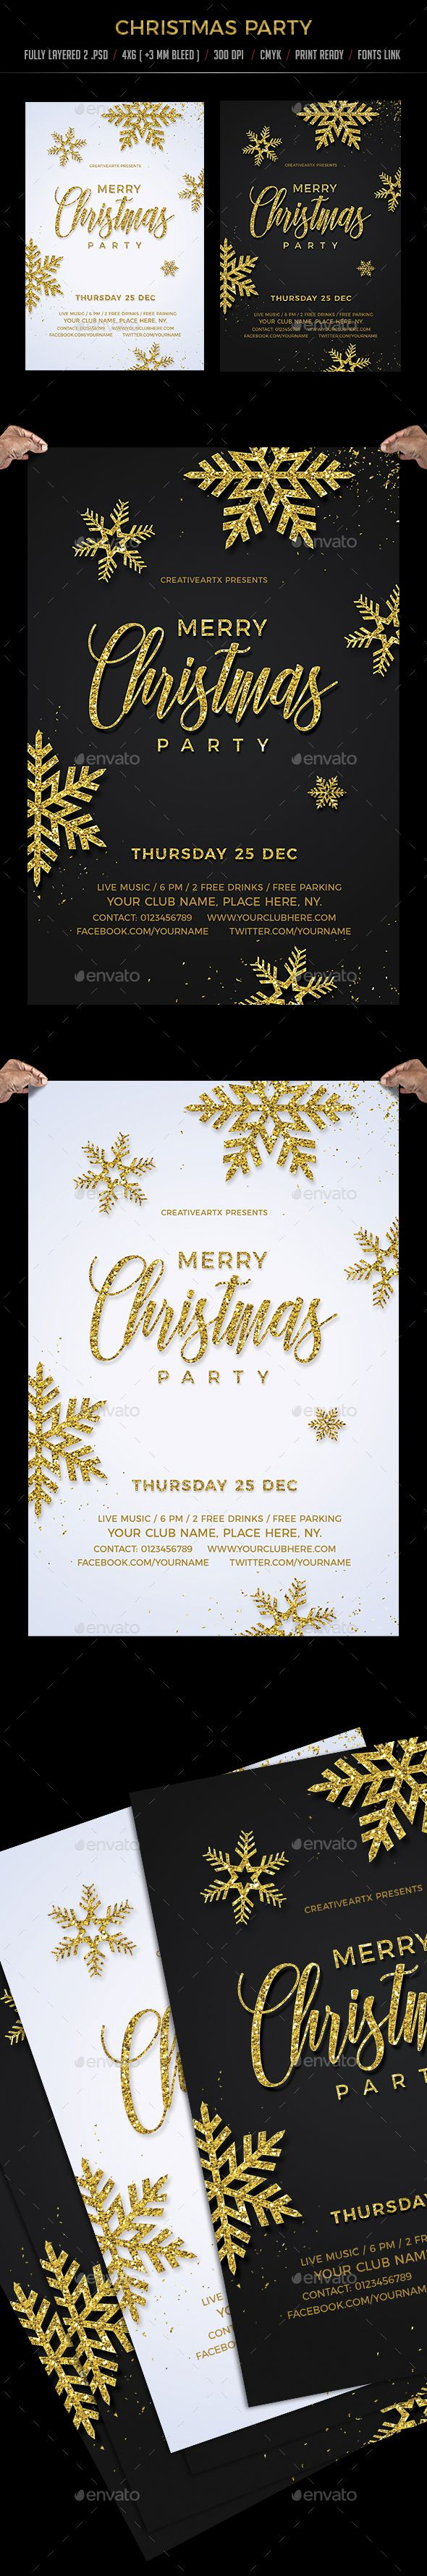 business event invitation templates%0A  Christmas  Party Template